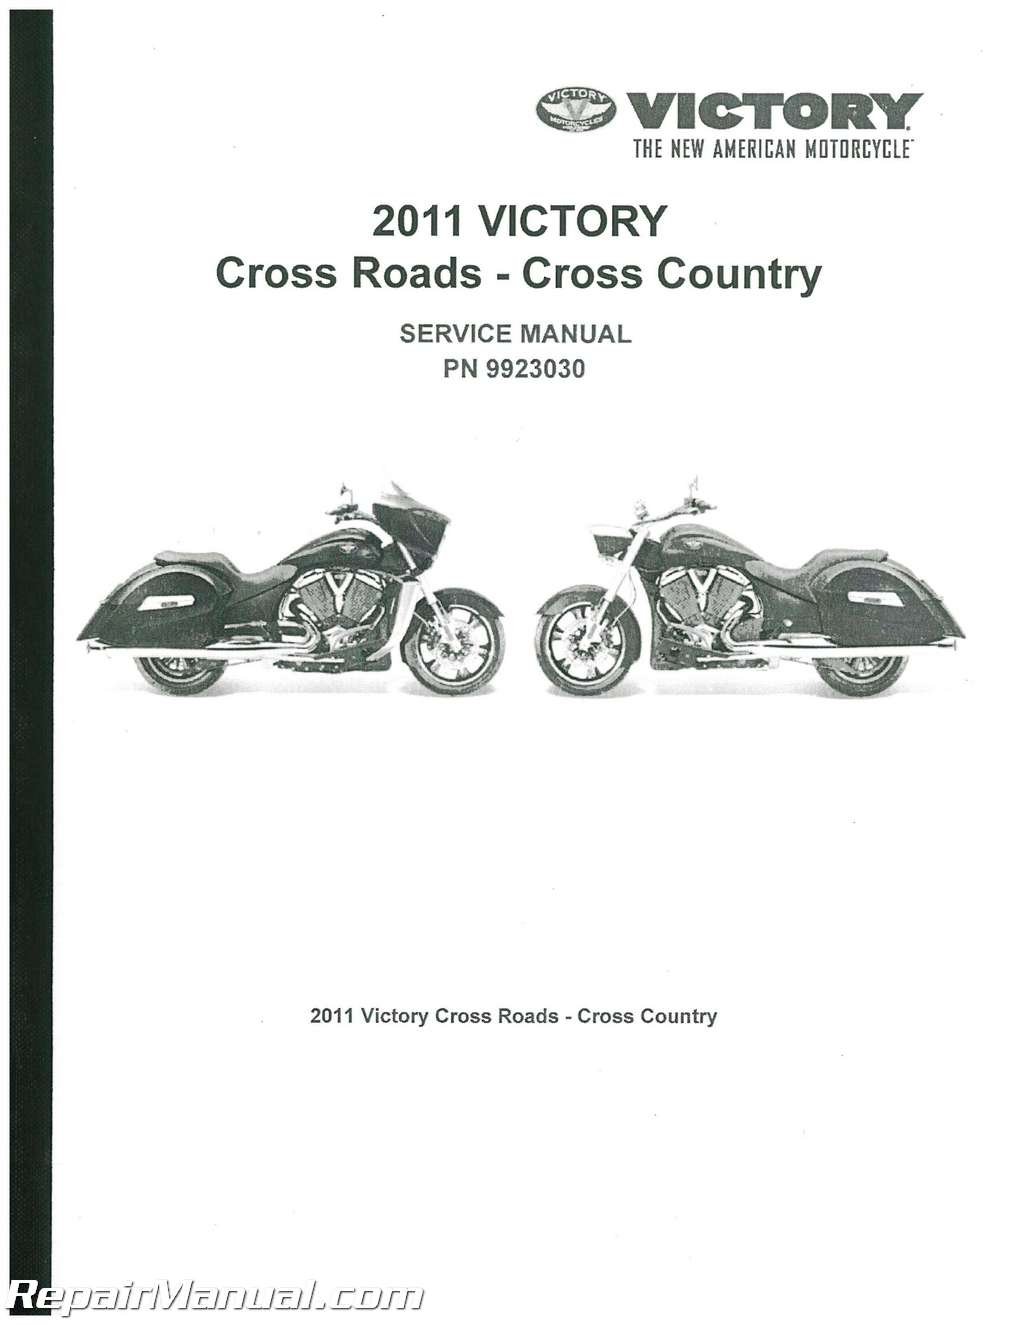 2011 victory cross country and cross roads service manual rh repairmanual com victory cross country service manual download victory cross country tour service manual